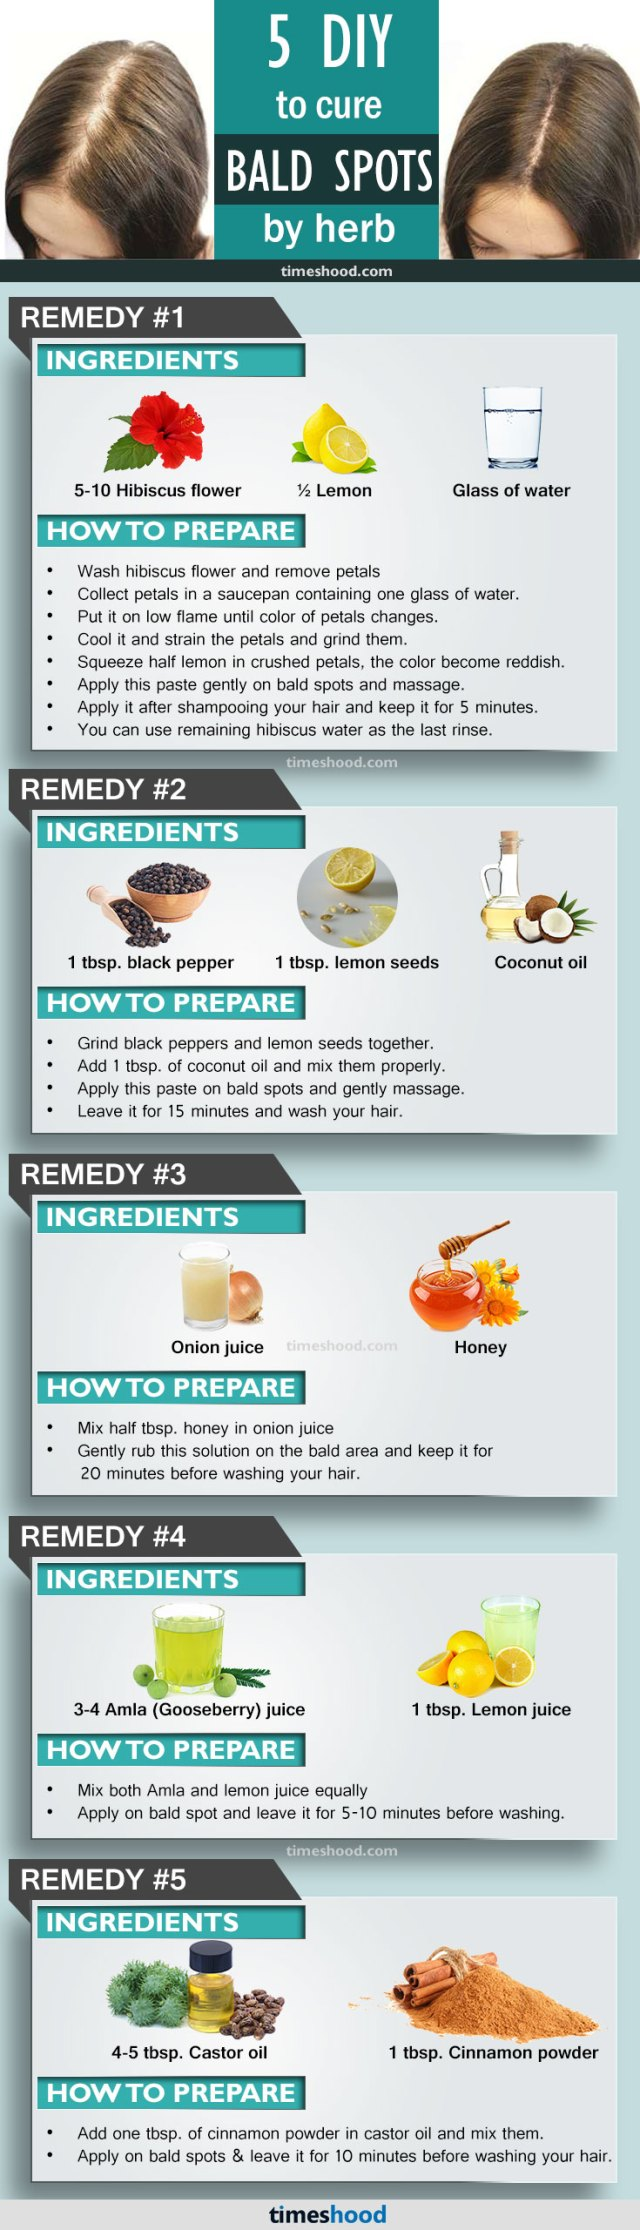 How to regrow hair on bald spot fast. Get rid of baldness. Check out these 5 DIY home remedy to grow hair on bald spot. Stop baldness and regrow hair naturally.